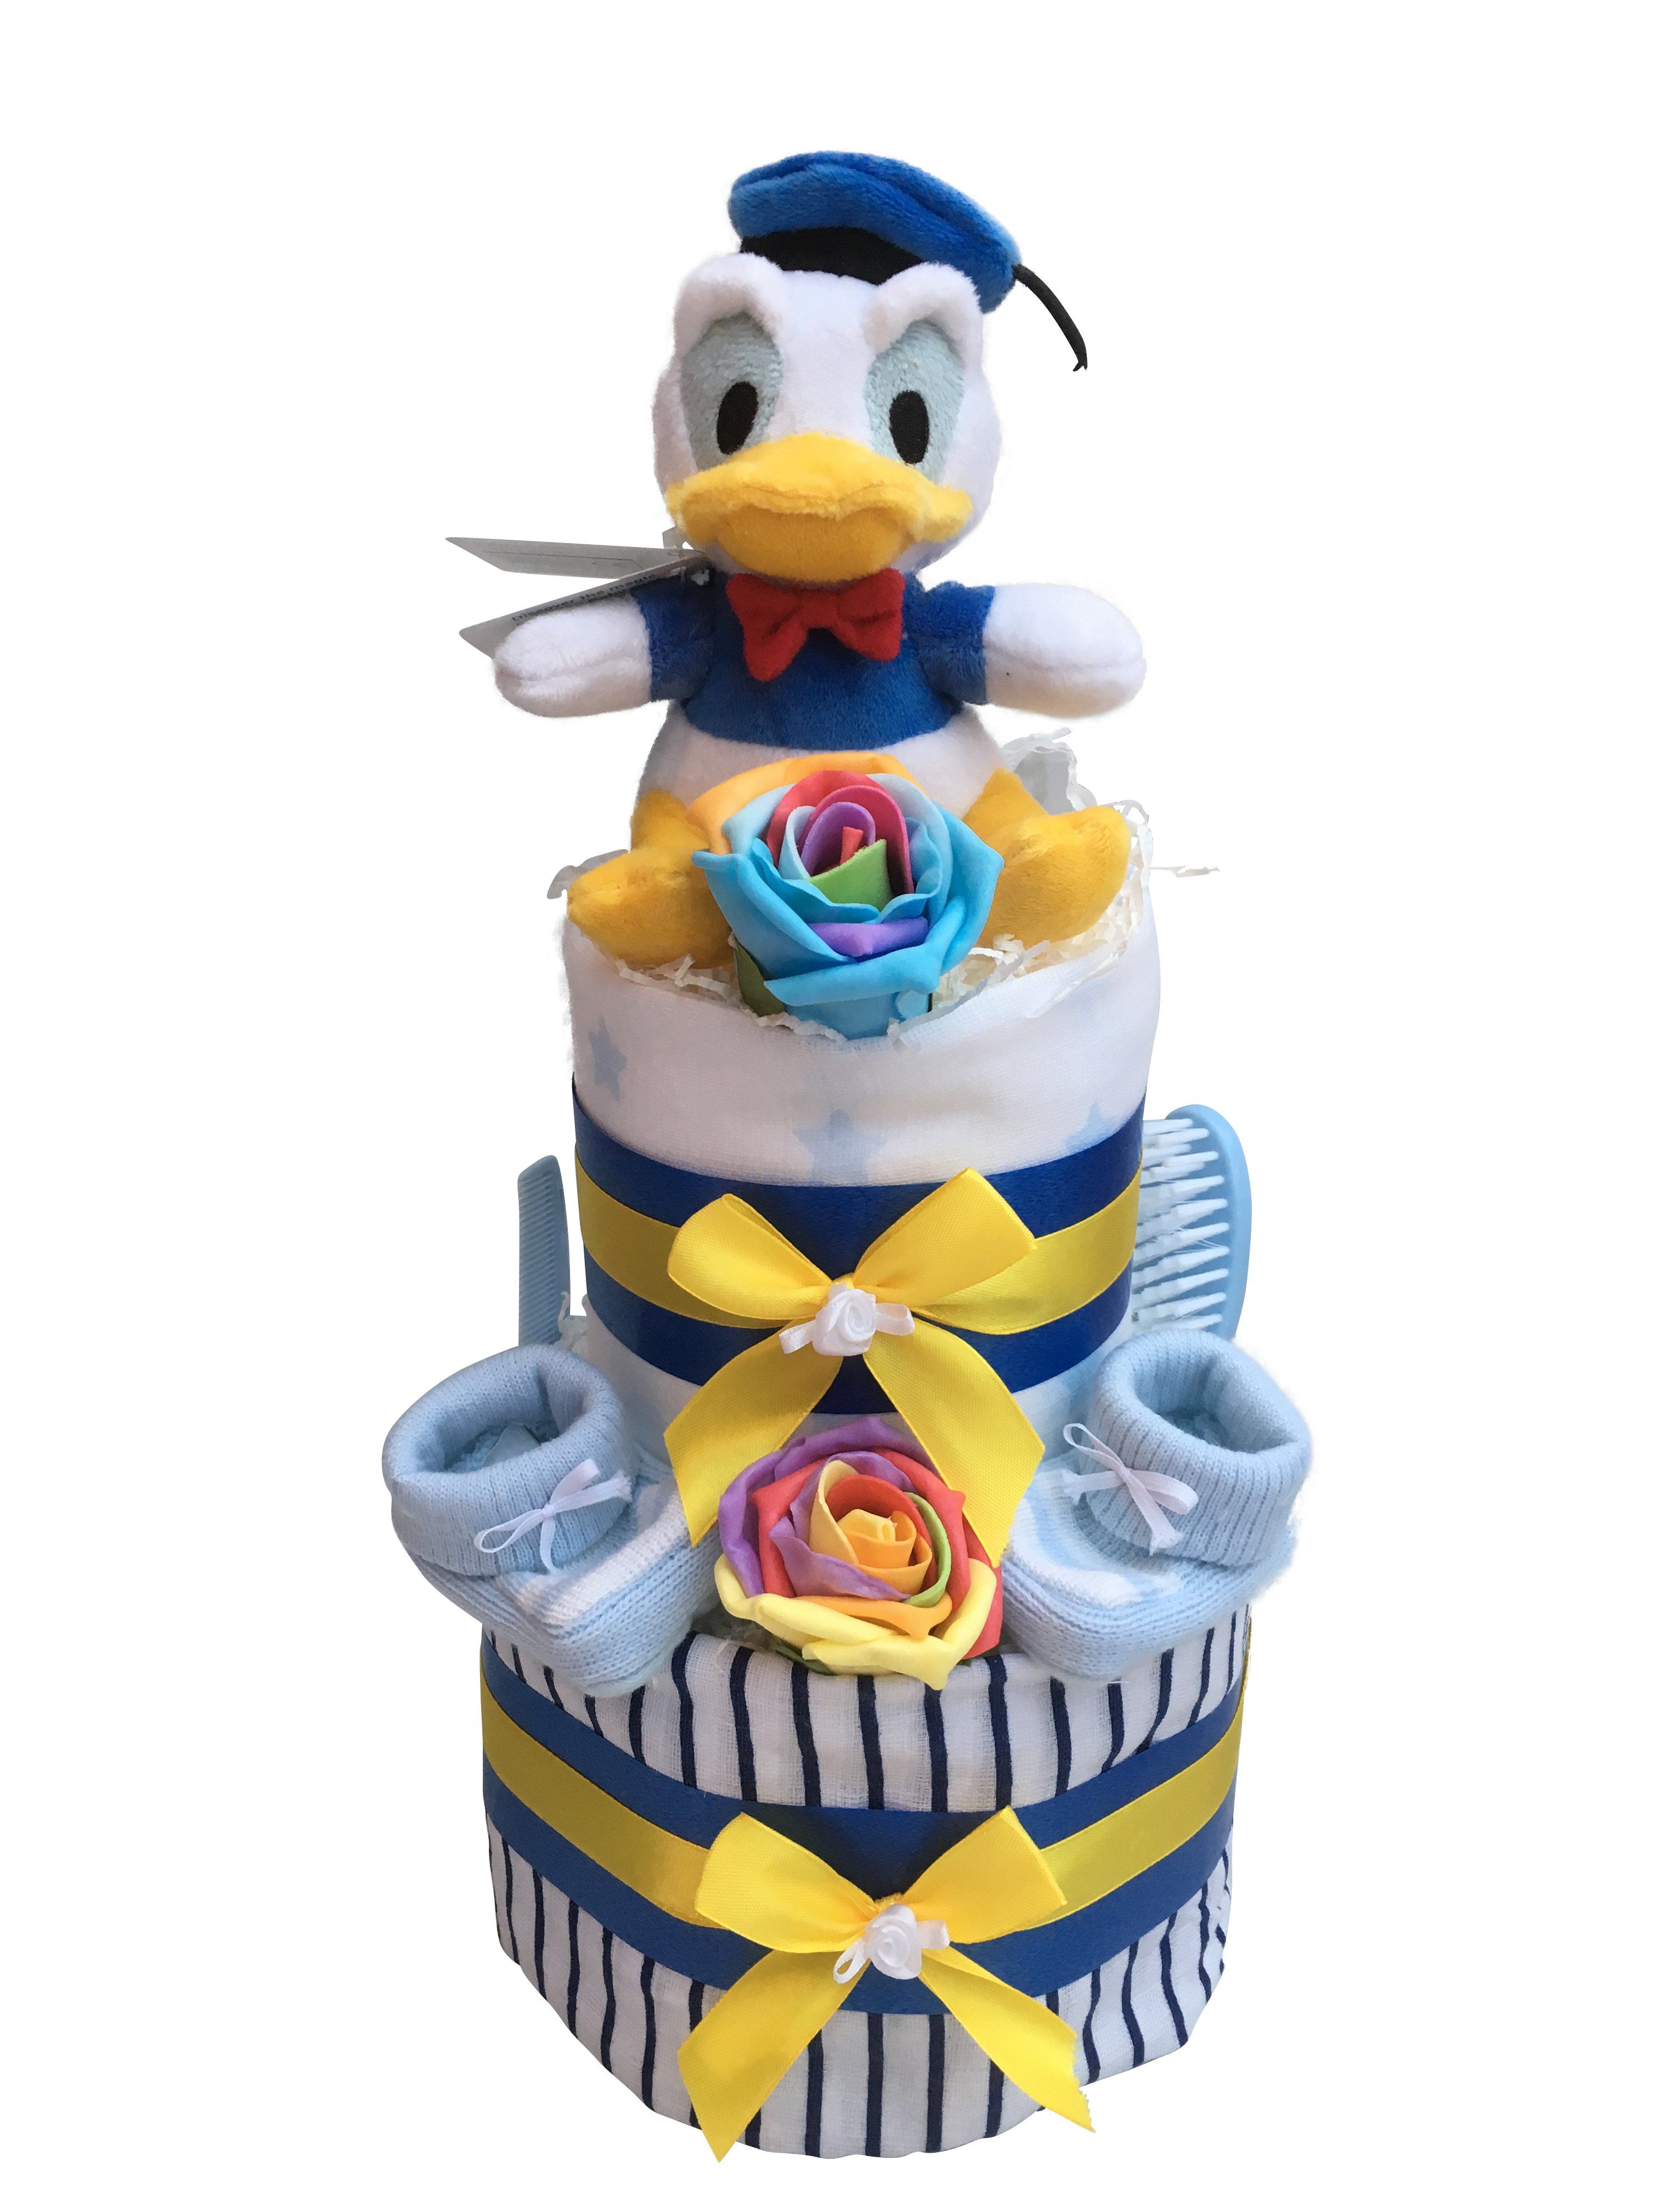 Surprising 2 Tier Nappy Cake Donald Duck Baby Gift Truly Gifts Uk Funny Birthday Cards Online Elaedamsfinfo